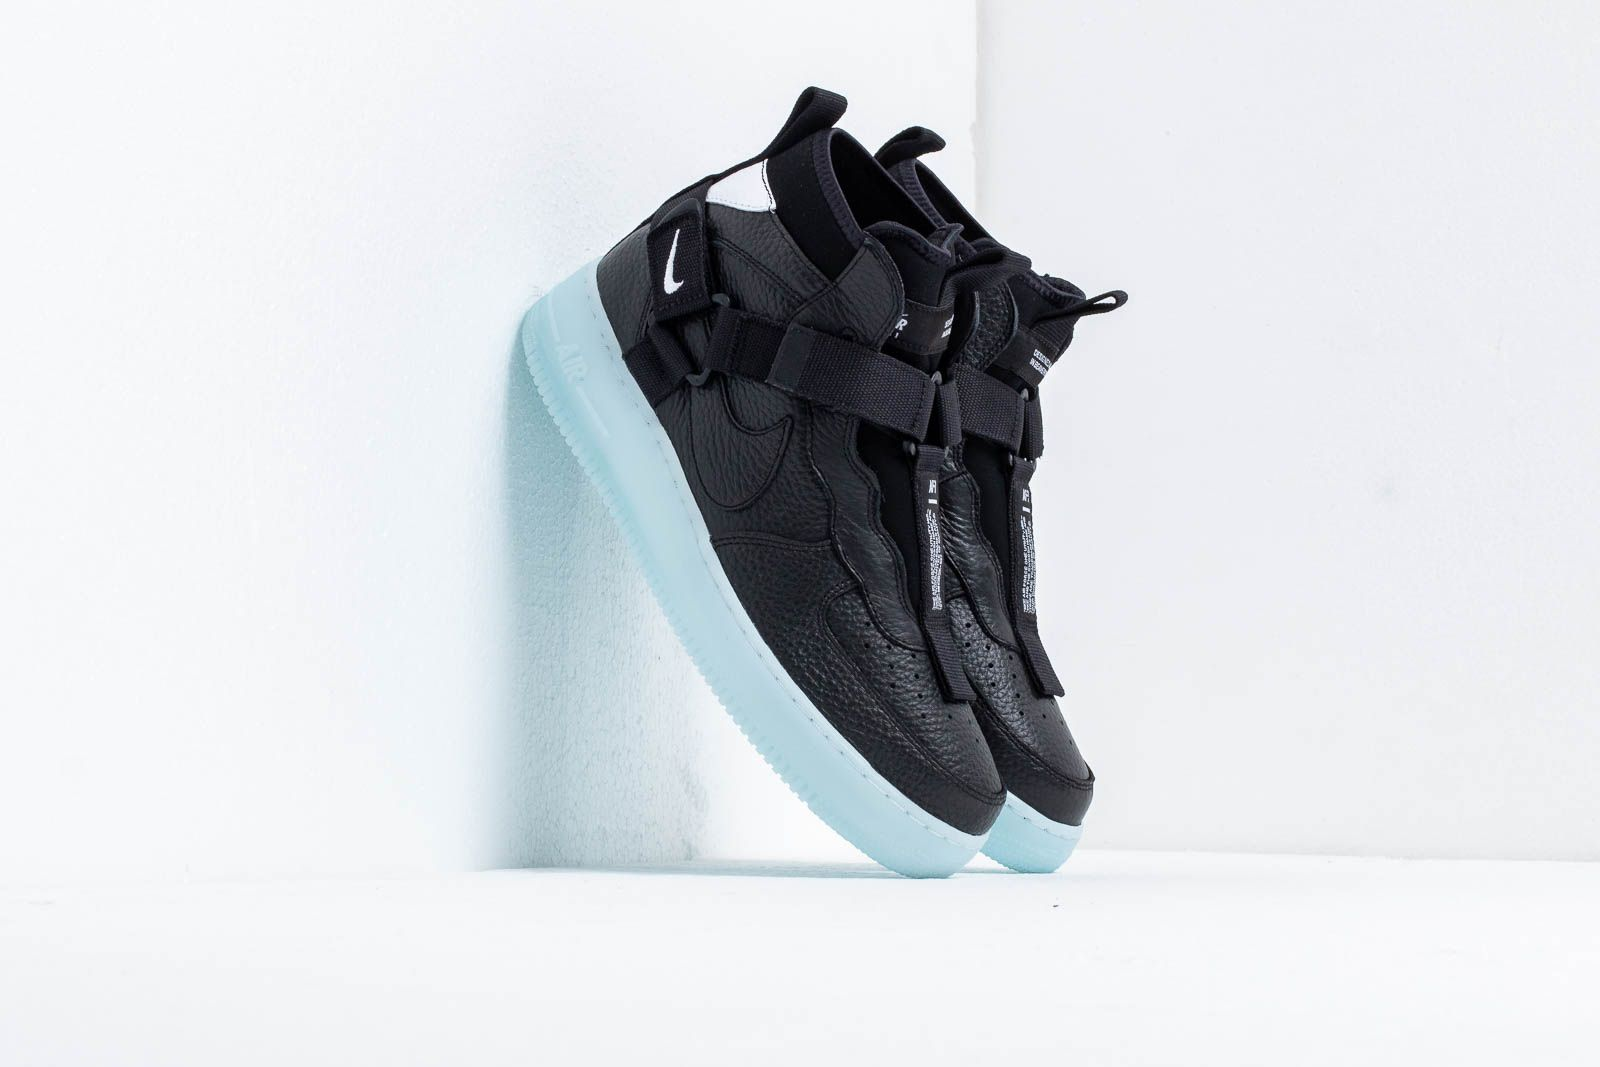 Nike Air Force 1 Utility Mid Black/ Half Blue-White W super cenie 676 zł kupuj na Footshop.pl